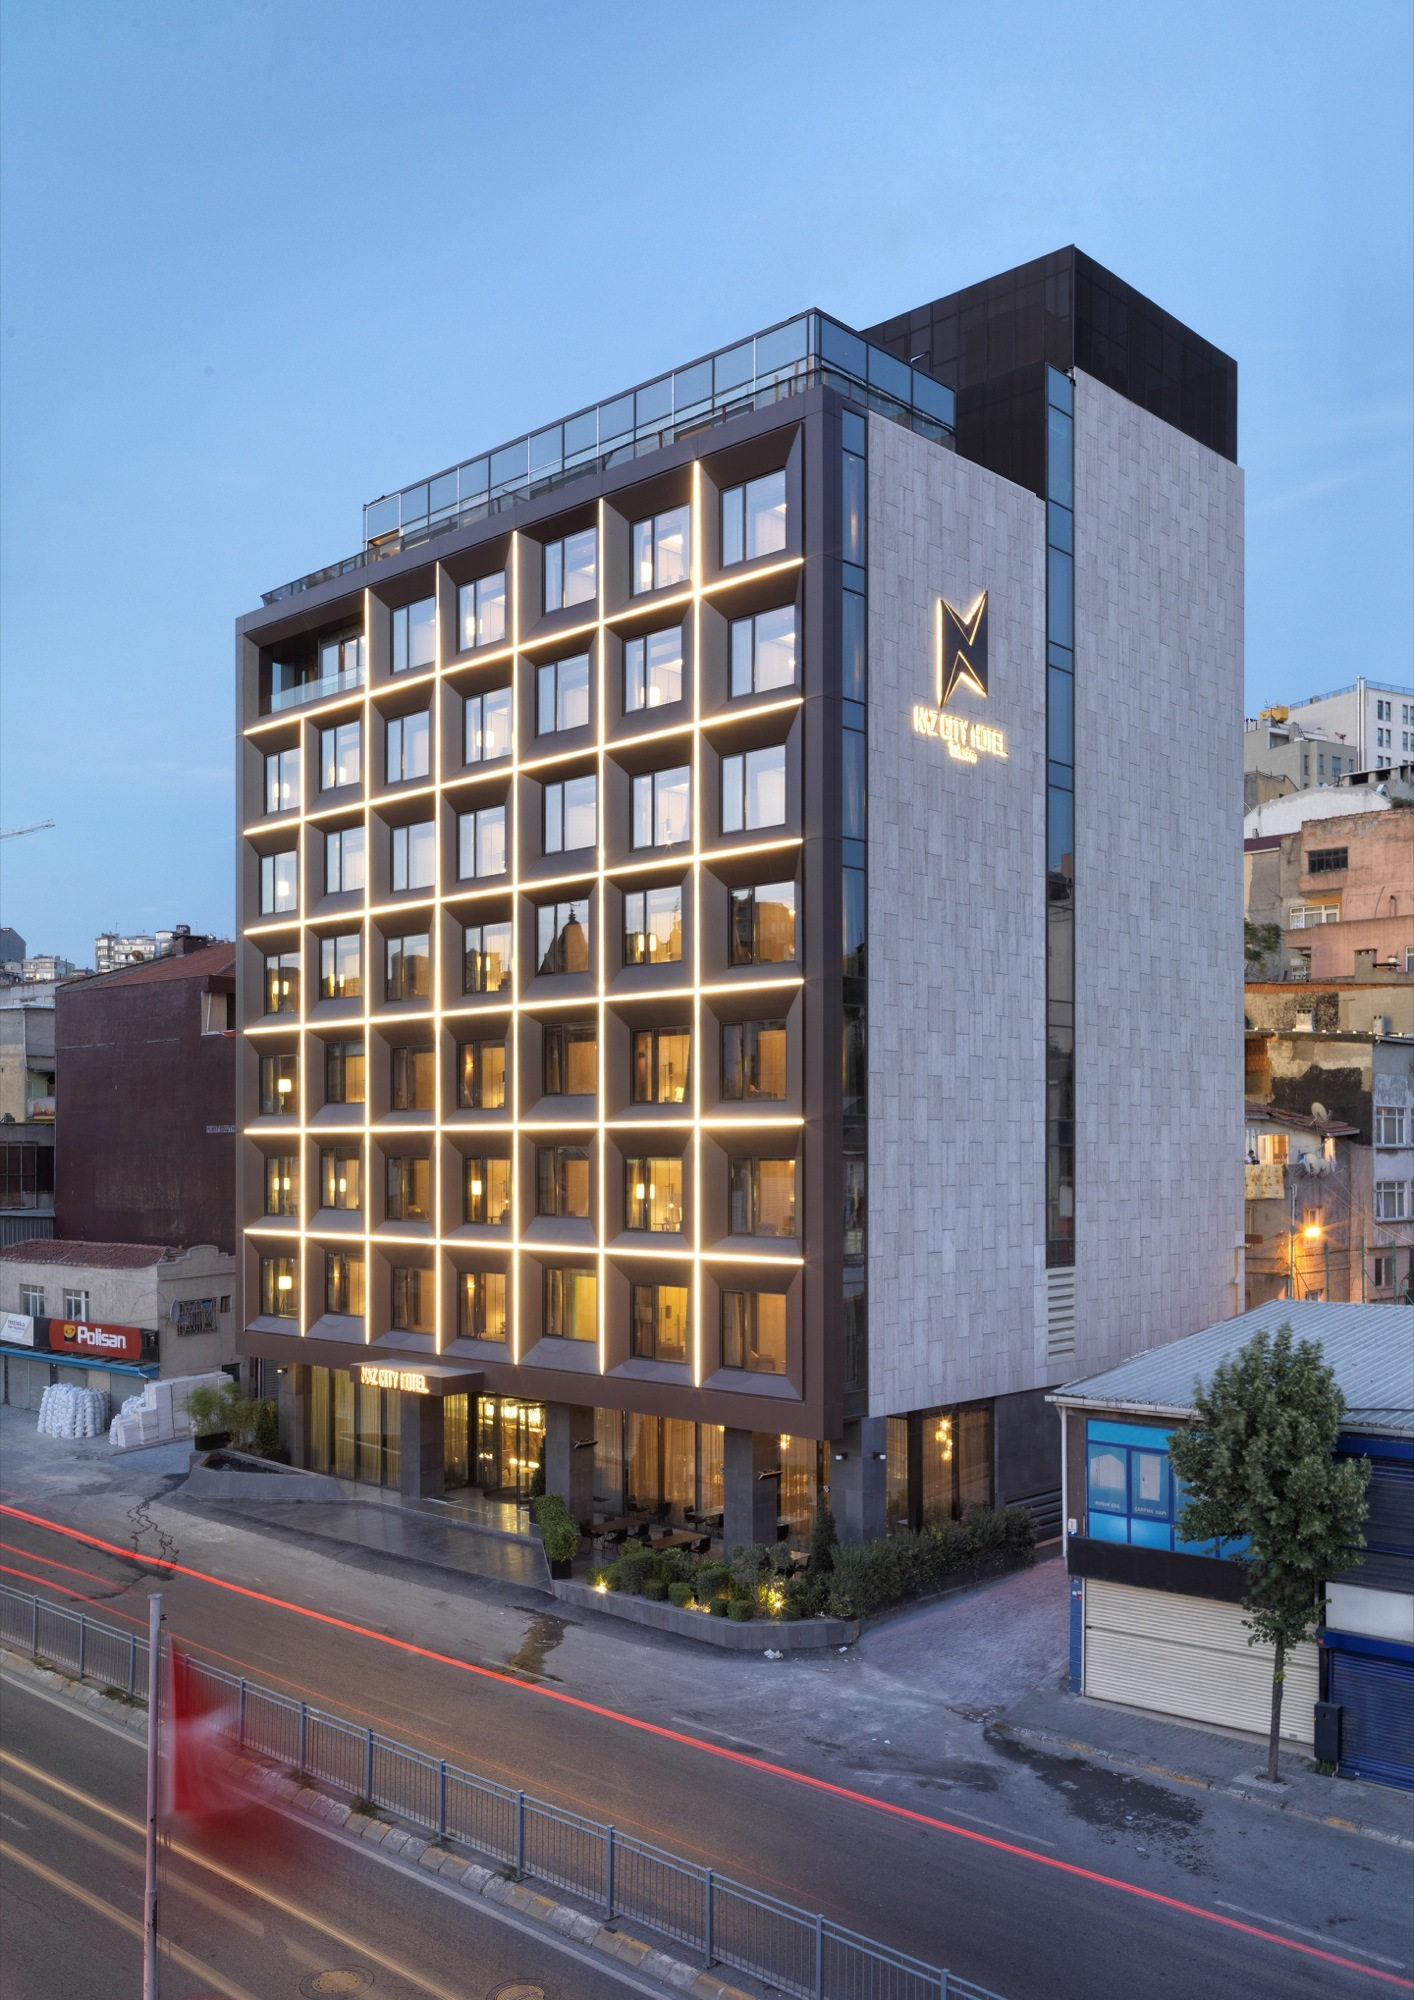 Naz city hotel taksim metex design group archdaily for Hotel design wallonie